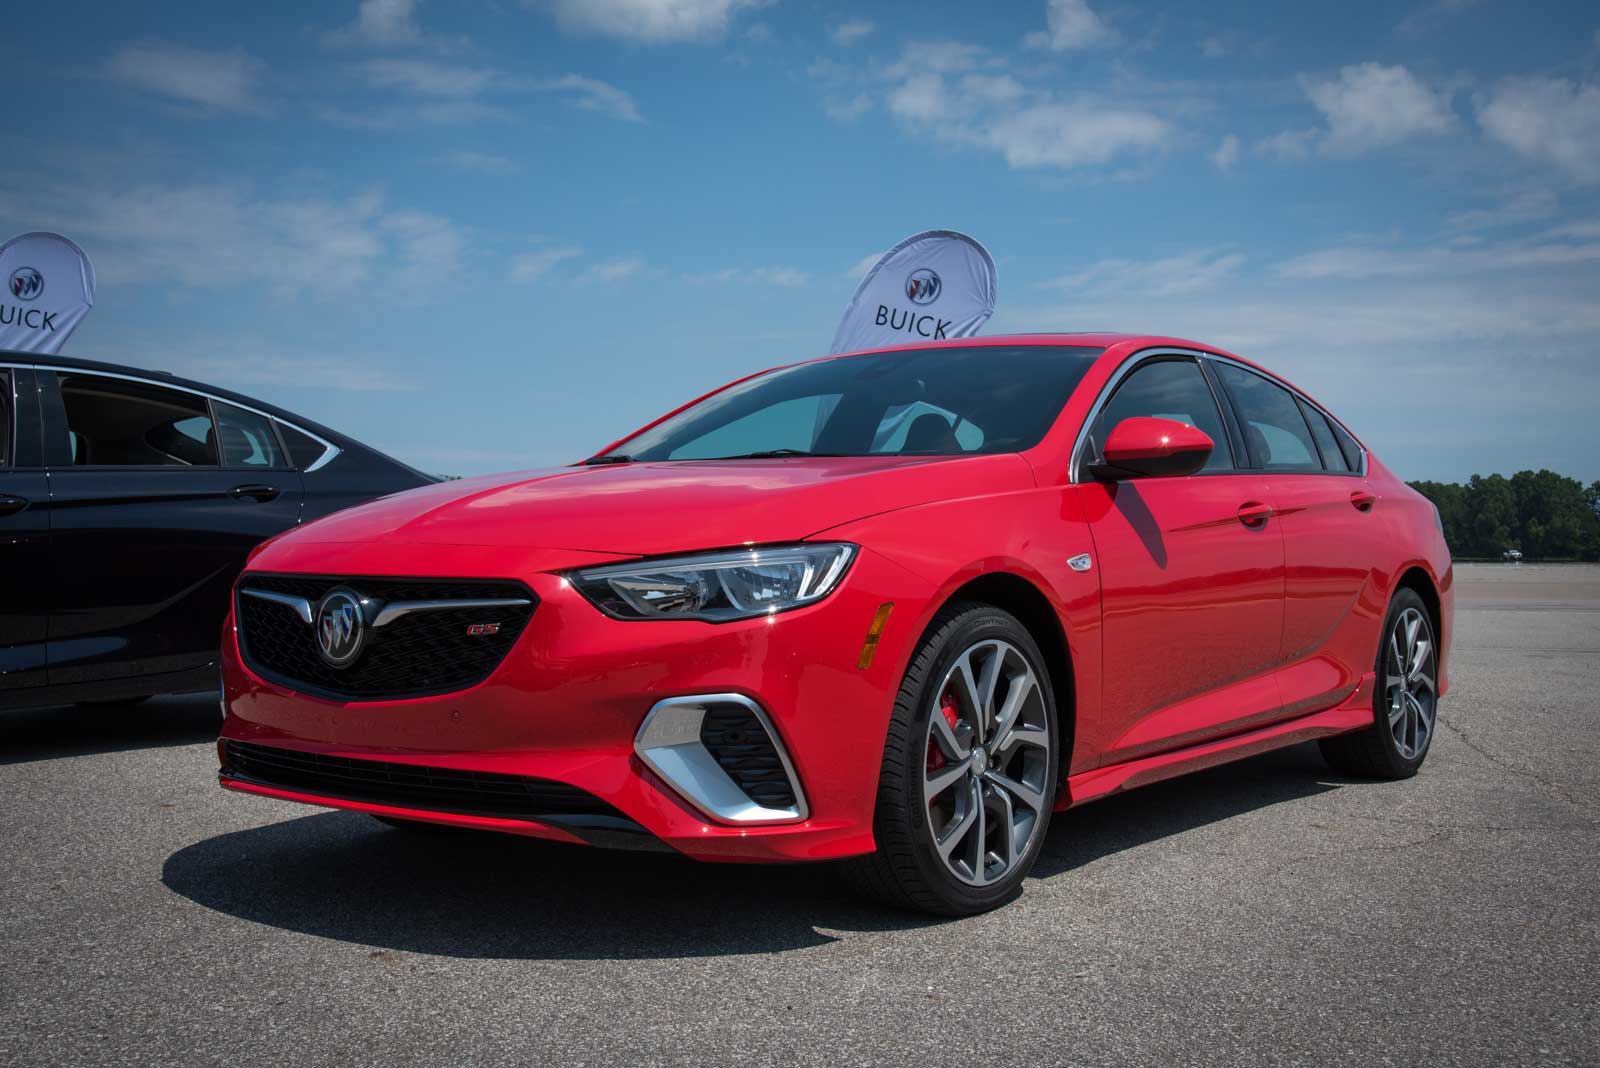 2018 Buick Regal Gs Front 02